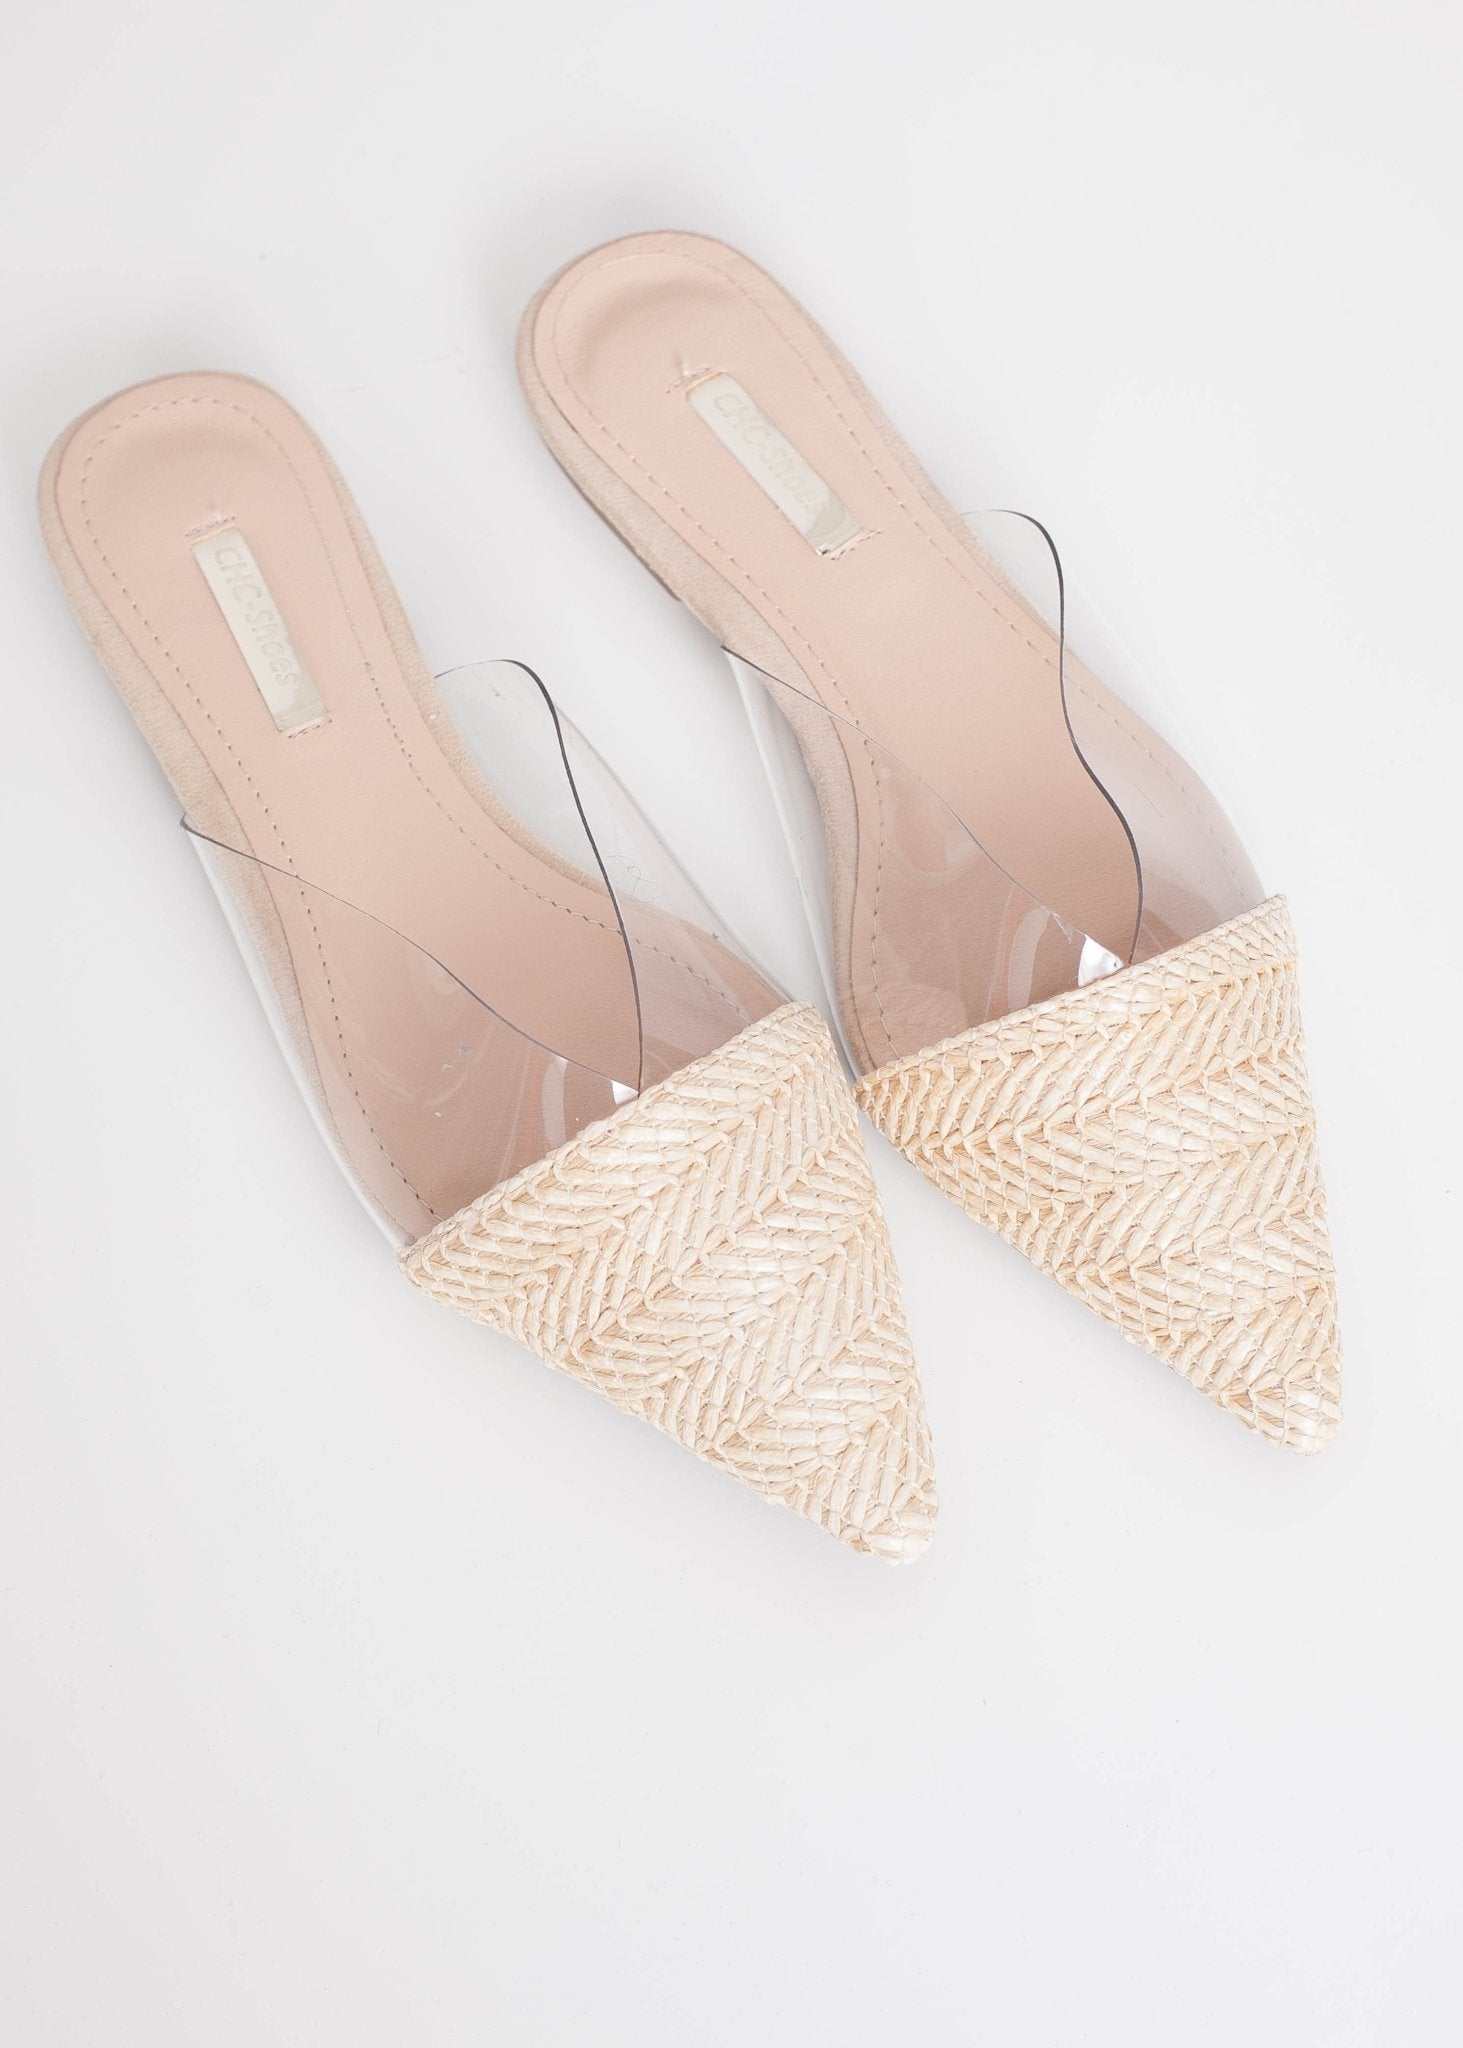 Priya Straw Mules - The Walk in Wardrobe